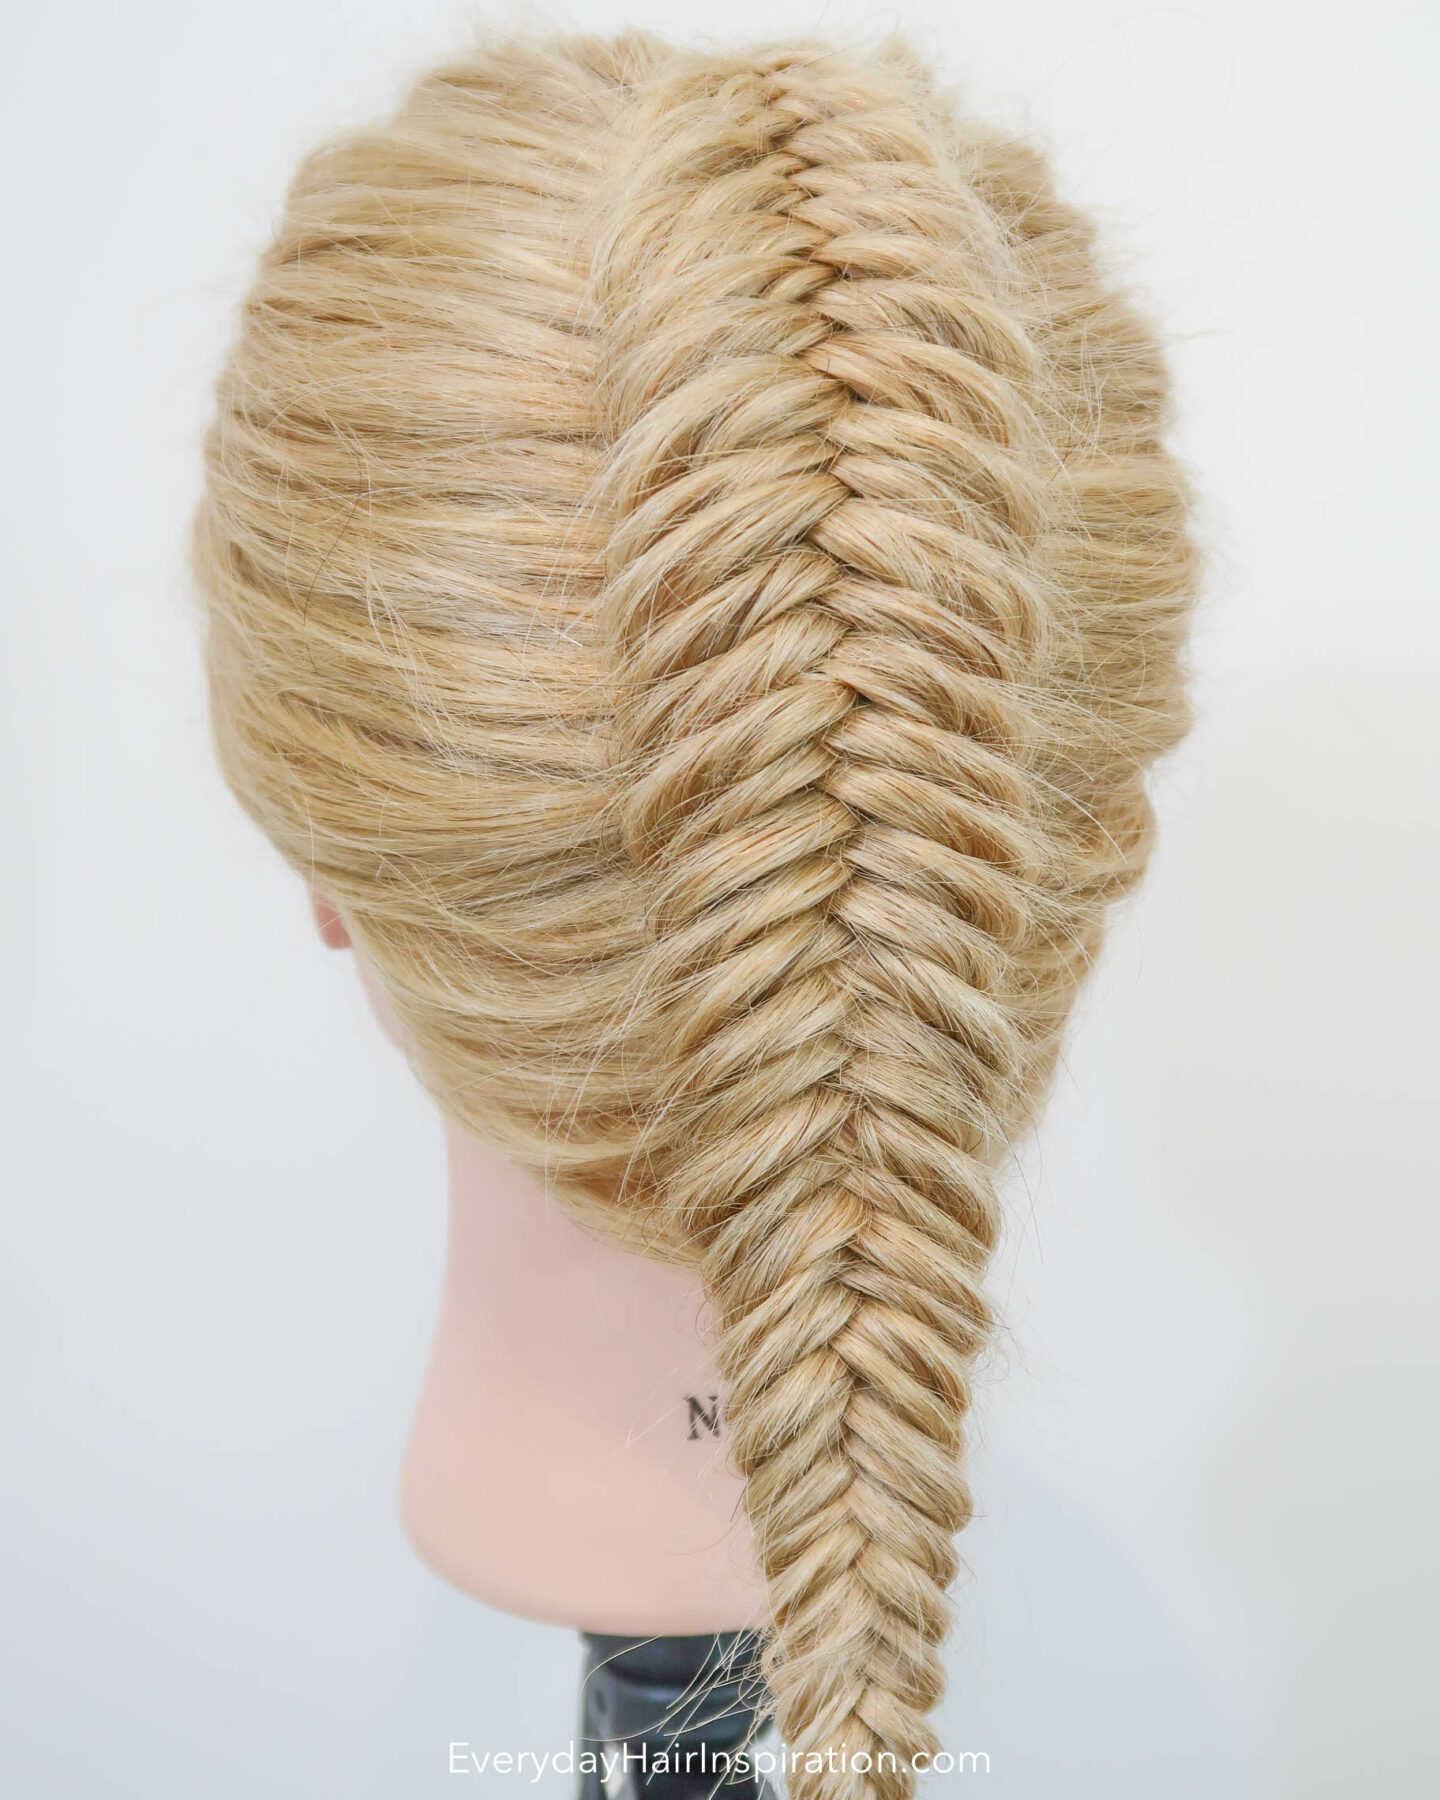 Blonde hairdresser doll seen from the back at an angle, with a single dutch fishtail braid in the hair